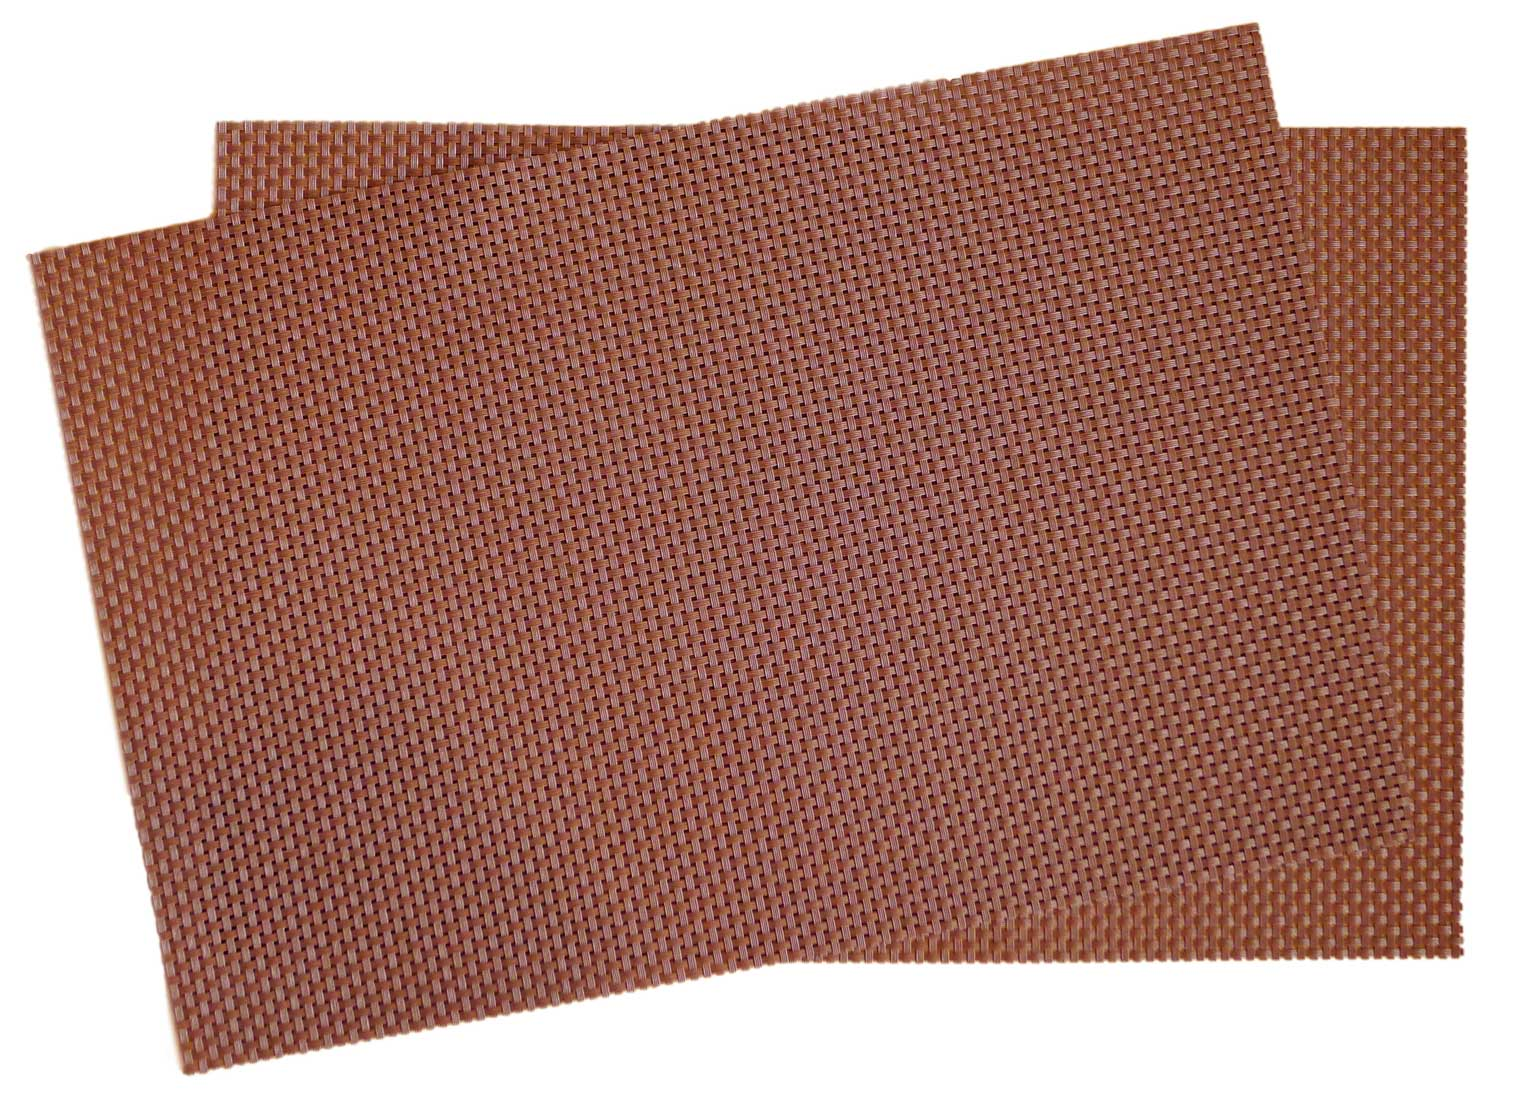 Image of Woven Vinyl Chocolate Brown MAT23